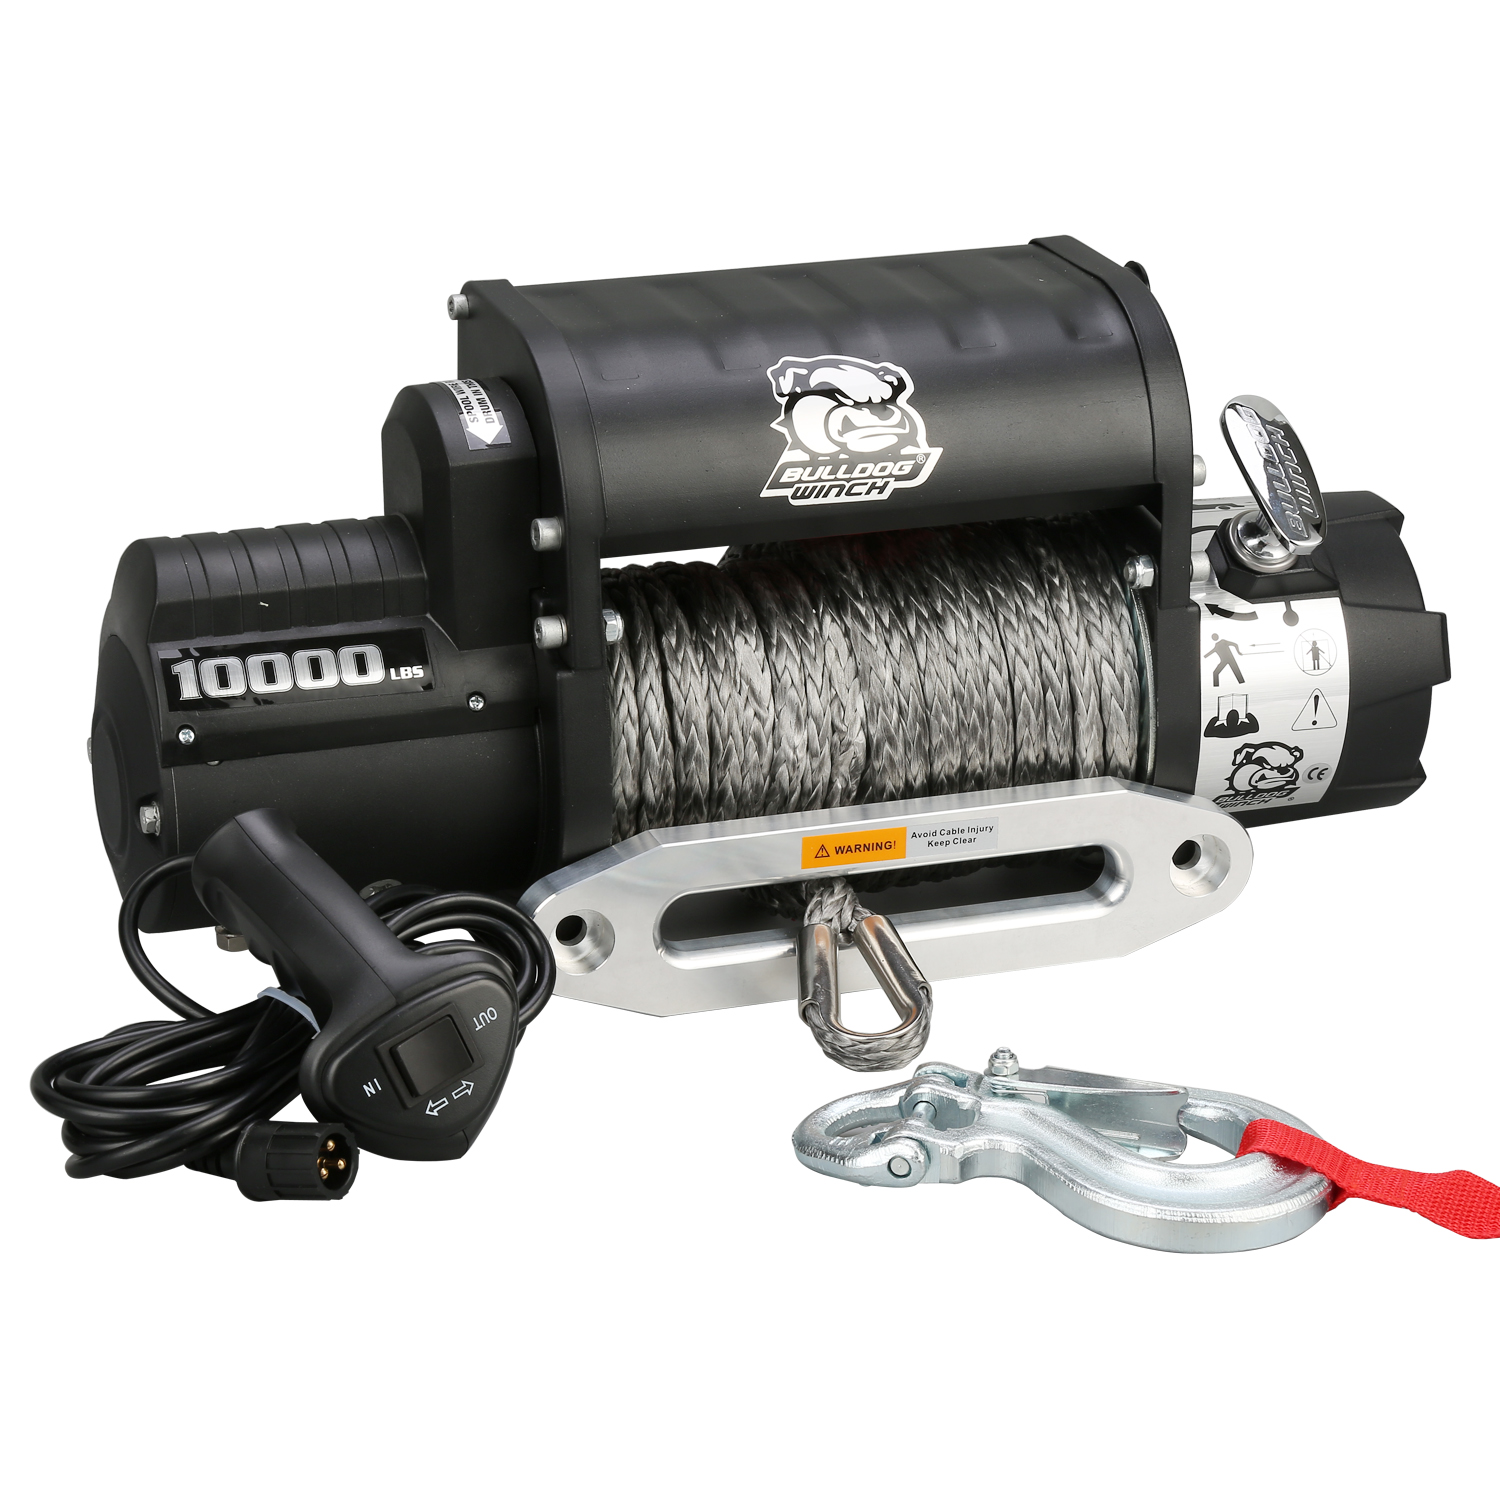 Bulldog Winch 10017 10000lb Winch w/5.8hp Series Wound, Integrated, 100ft Synthetic Rope, Alu Frl